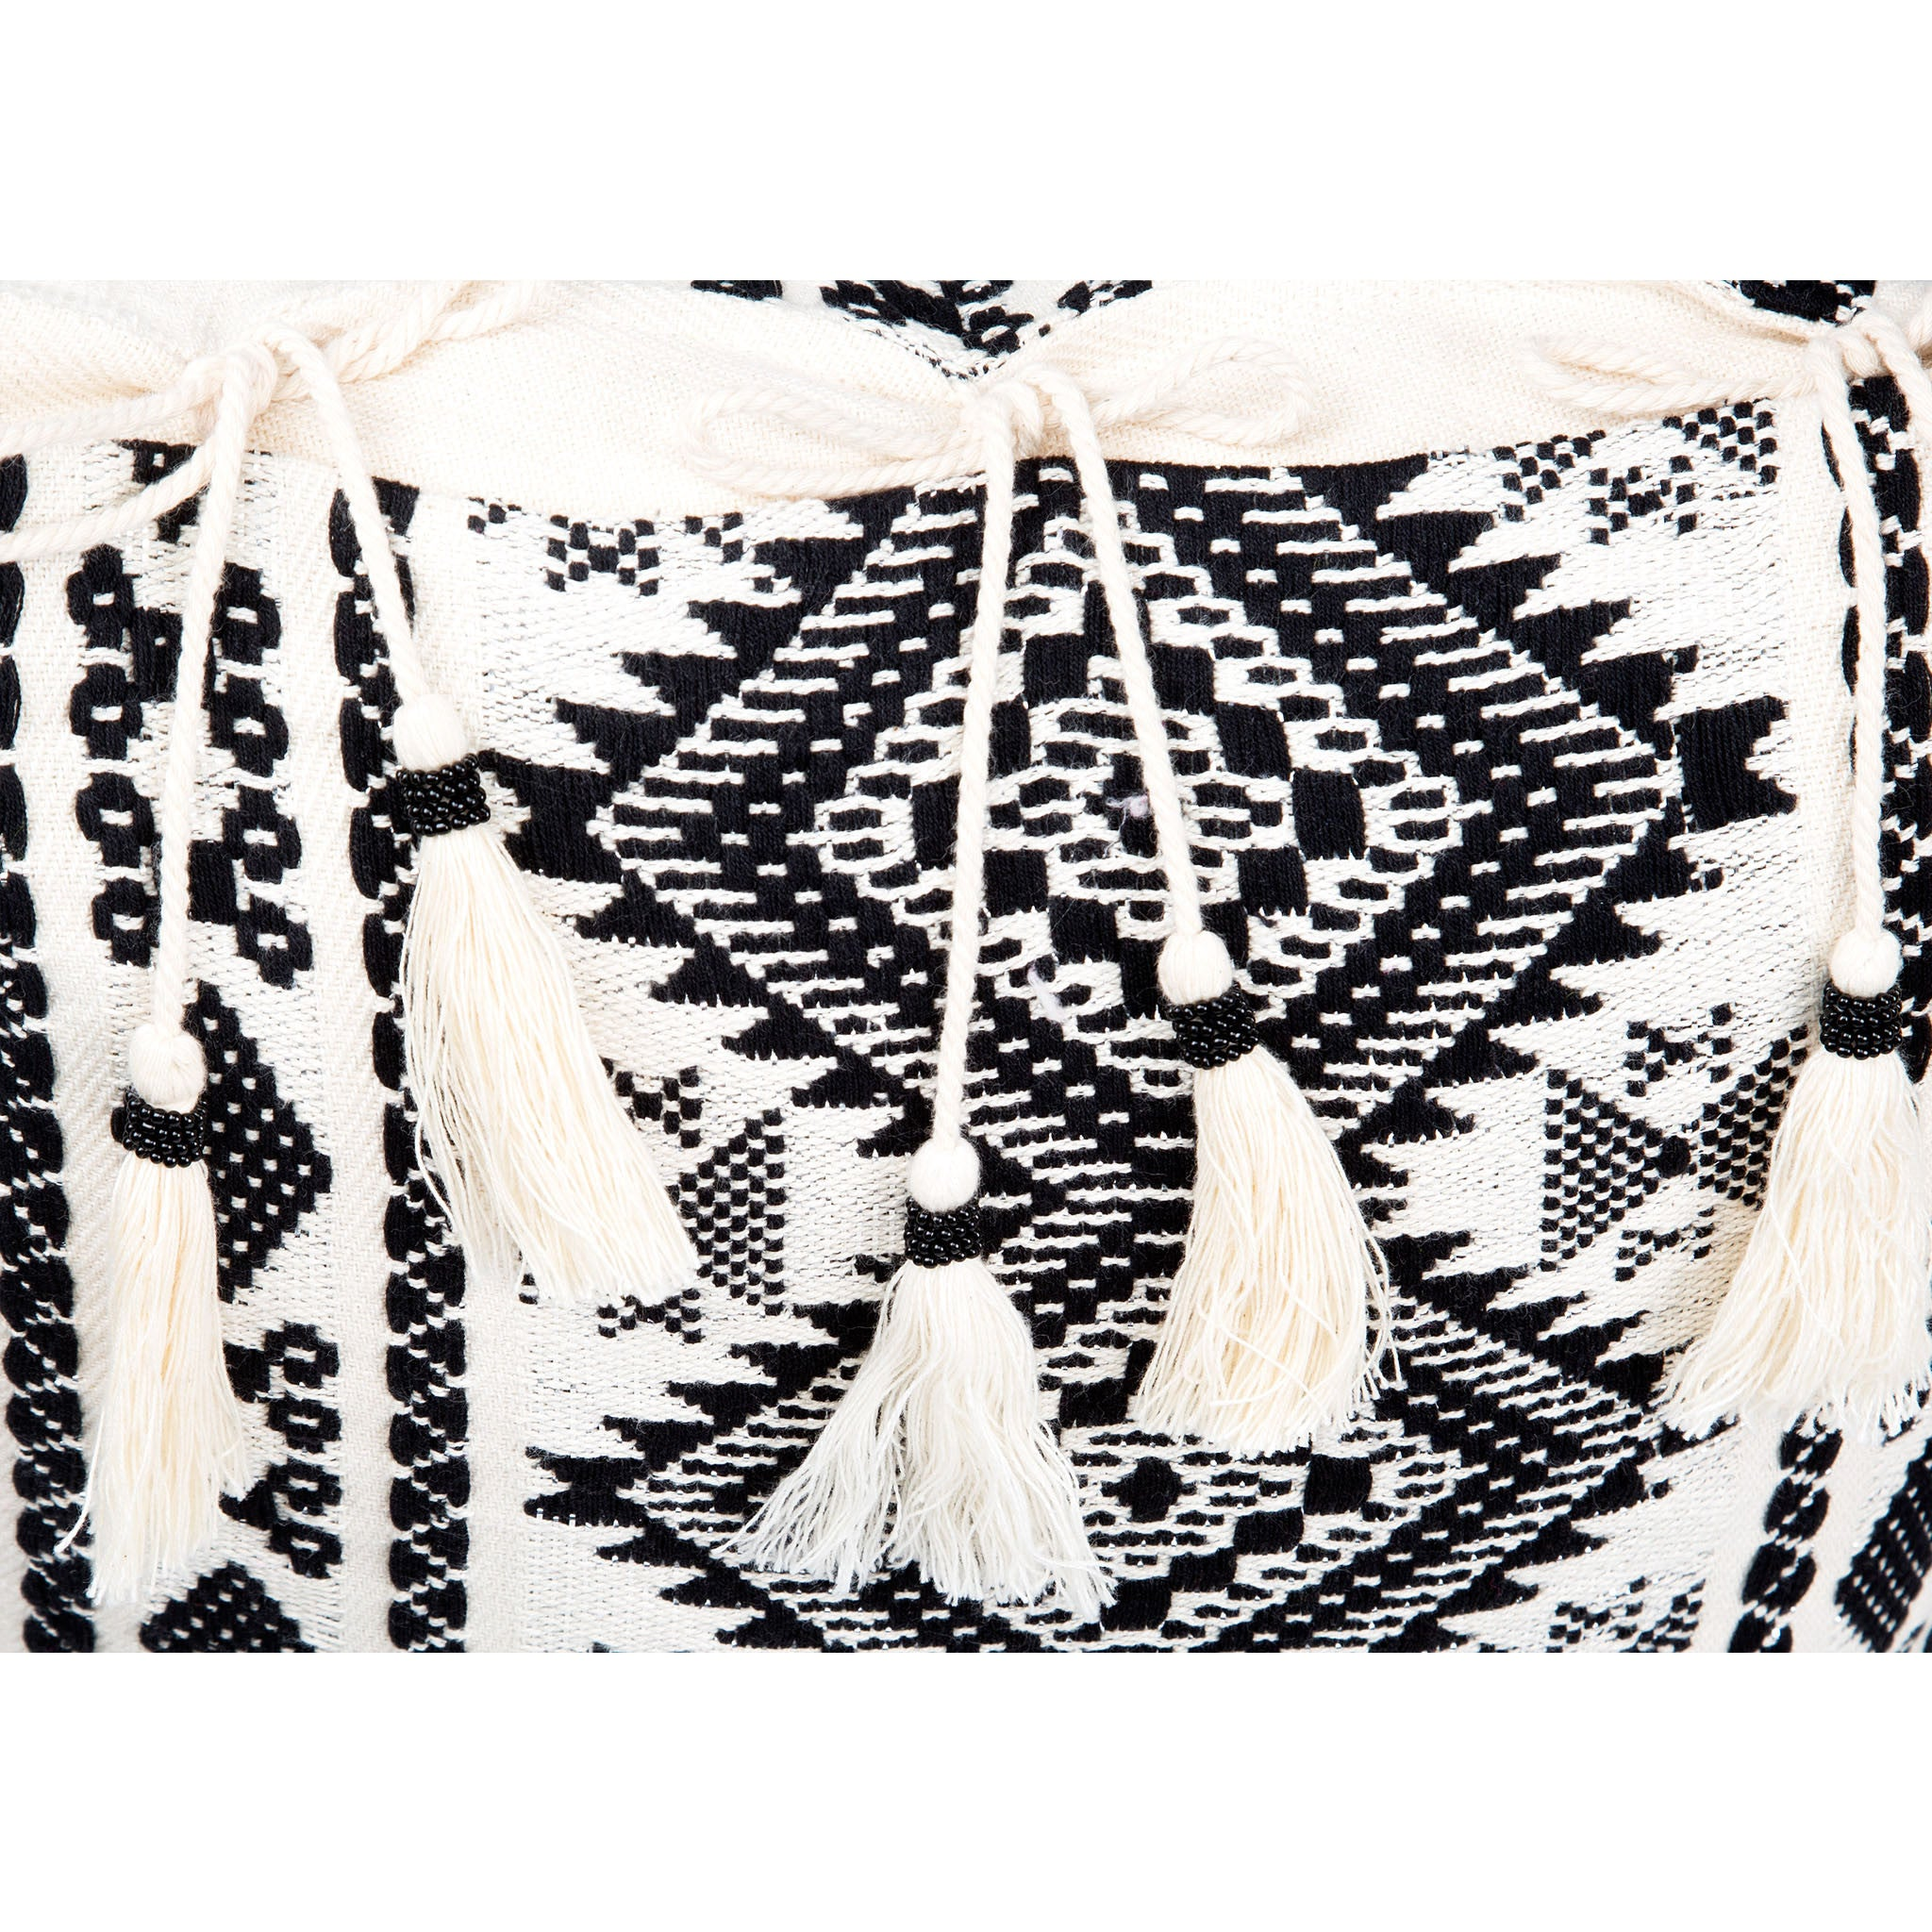 Bedouin-style black & white tasselled cotton cushion - Bivain - 4